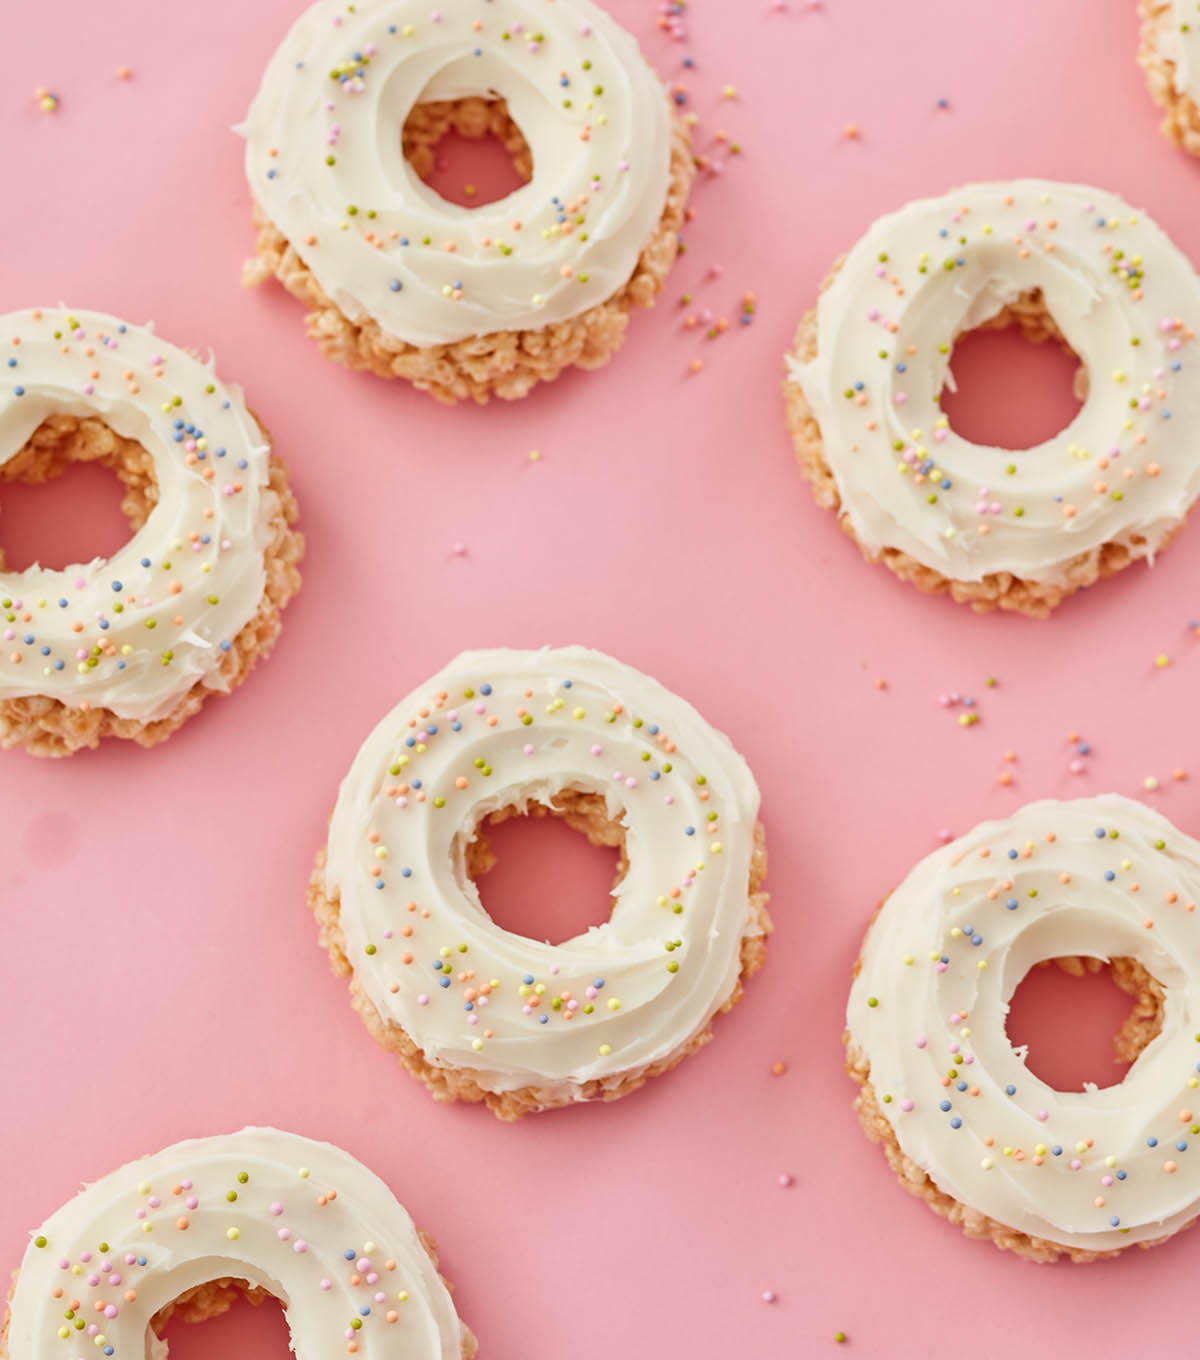 How To Make A Rice Cereal Treat Donuts